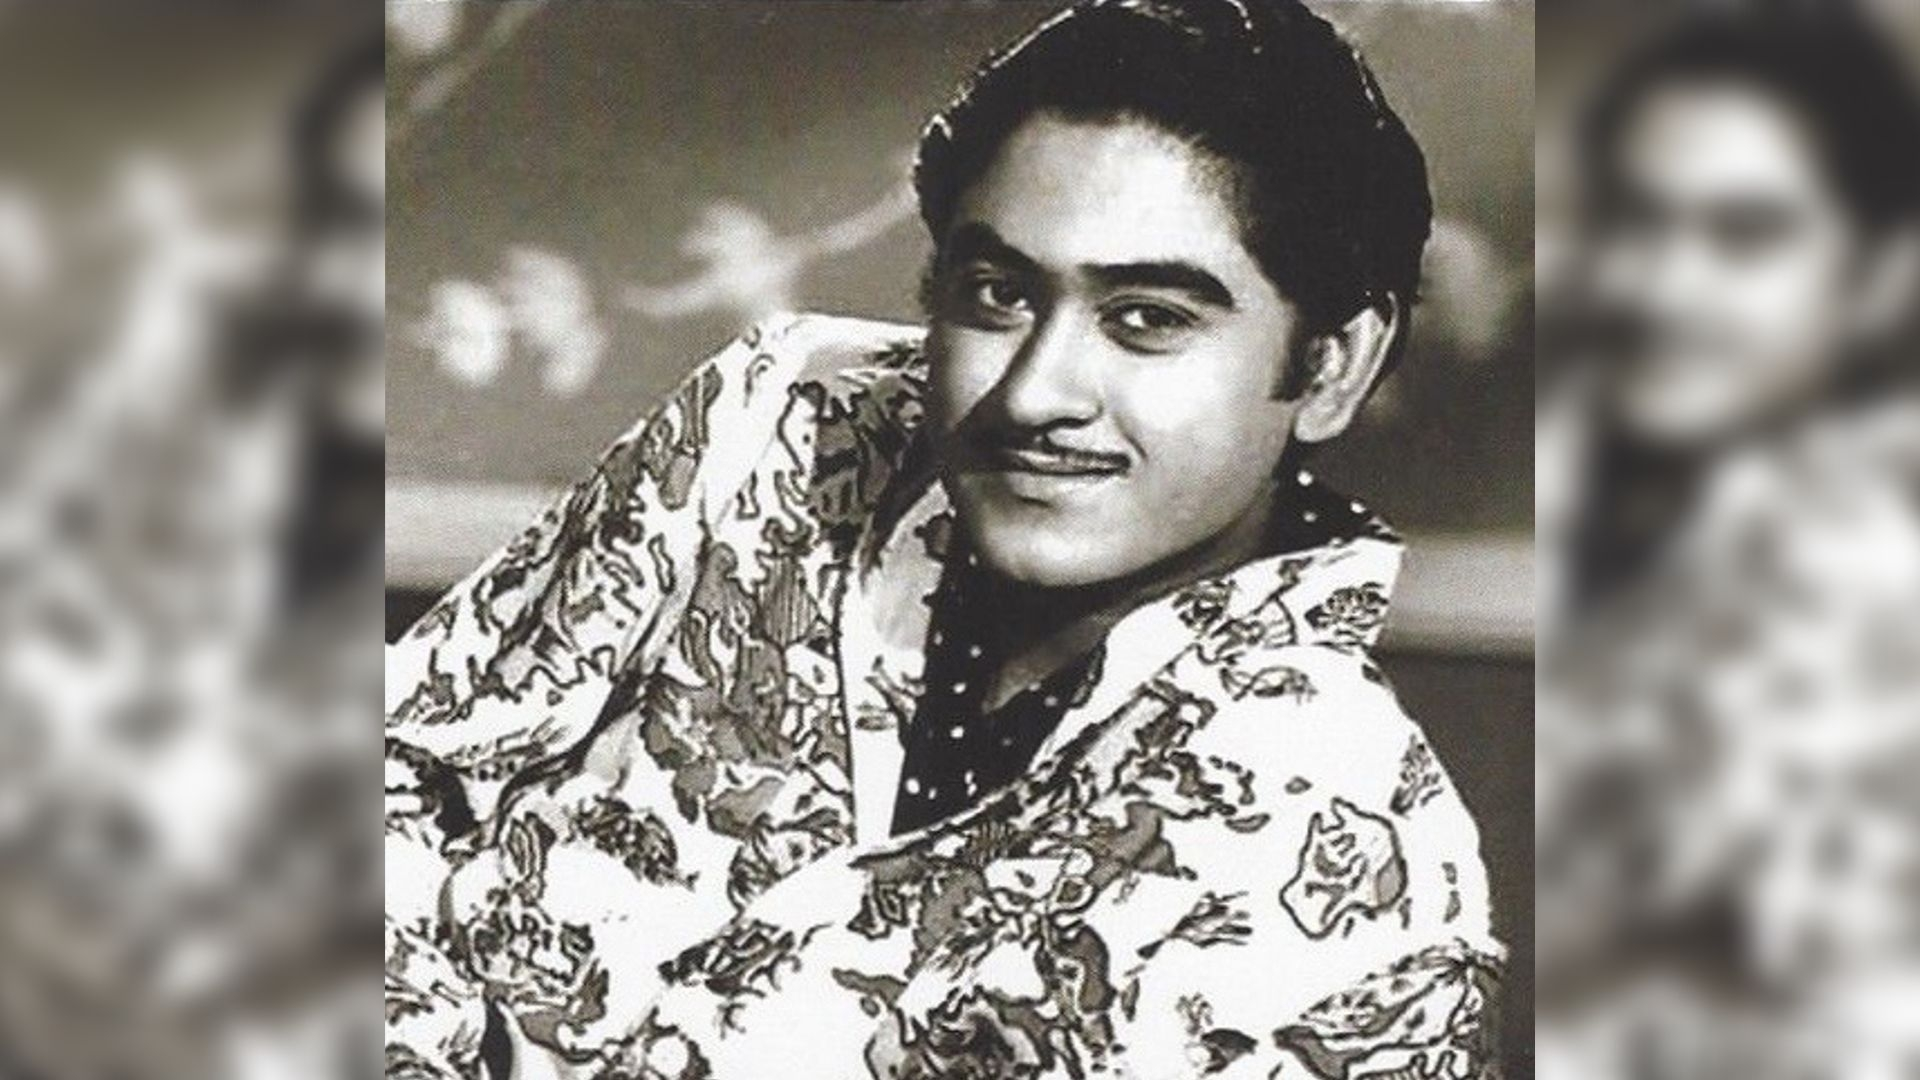 8 Anecdotes About Kishore Kumar That Prove He Was an Eccentric Man